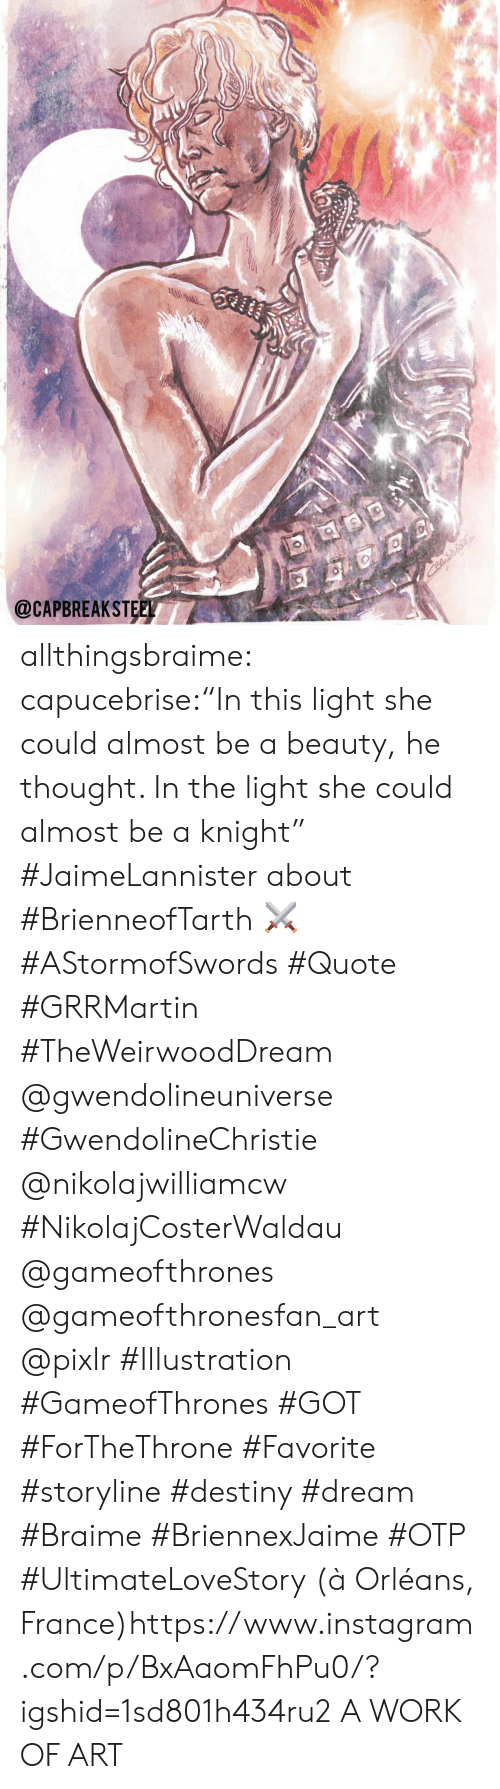 "gameofthrones: @CAPBREAKSTEEL allthingsbraime:  capucebrise:""In this light she could almost be a beauty, he thought. In the light she could almost be a knight"" #JaimeLannister about #BrienneofTarth ⚔ #AStormofSwords #Quote #GRRMartin #TheWeirwoodDream @gwendolineuniverse #GwendolineChristie @nikolajwilliamcw #NikolajCosterWaldau @gameofthrones @gameofthronesfan_art @pixlr #Illustration #GameofThrones #GOT #ForTheThrone #Favorite #storyline #destiny #dream #Braime #BriennexJaime #OTP #UltimateLoveStory  (à Orléans, France)https://www.instagram.com/p/BxAaomFhPu0/?igshid=1sd801h434ru2  A WORK OF ART"